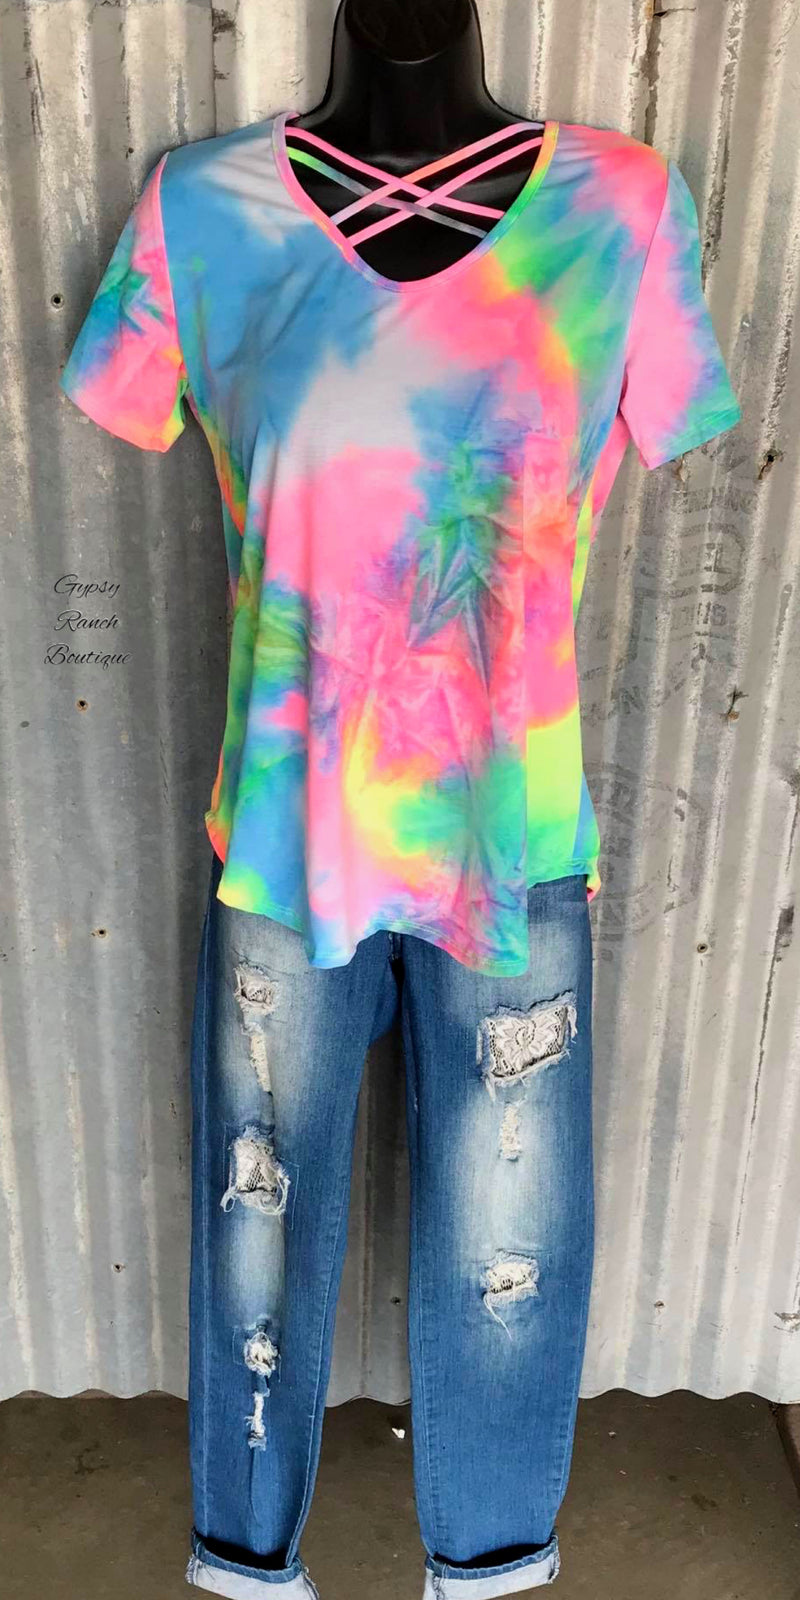 Sunnyvale Criss Cross Tye Dye Top - Also in Plus Size